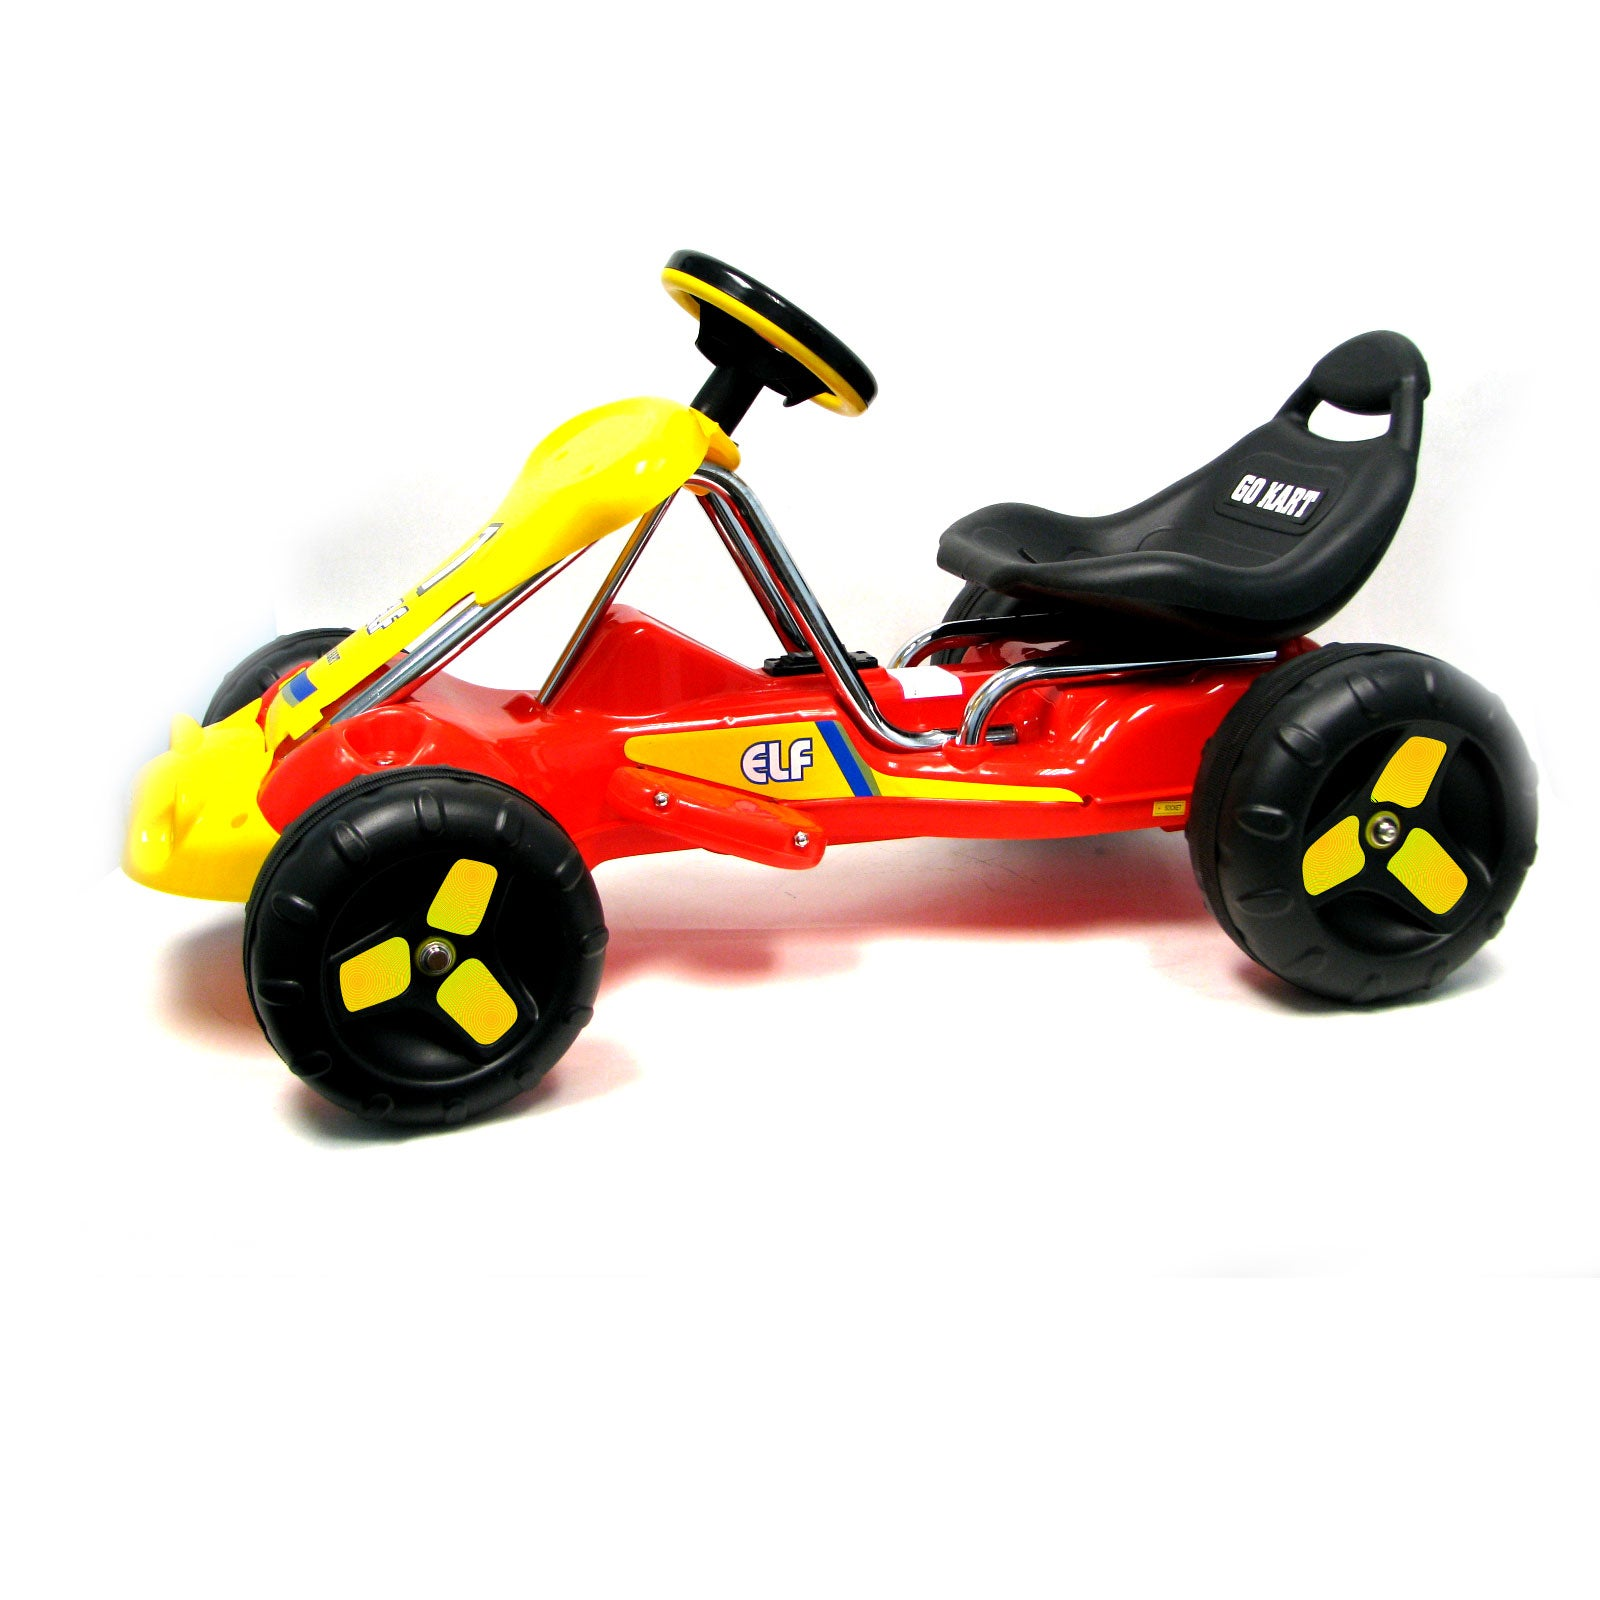 Ride on toy go kart battery powered ride on toy by lil for Motorized ride on toys for 5 year olds